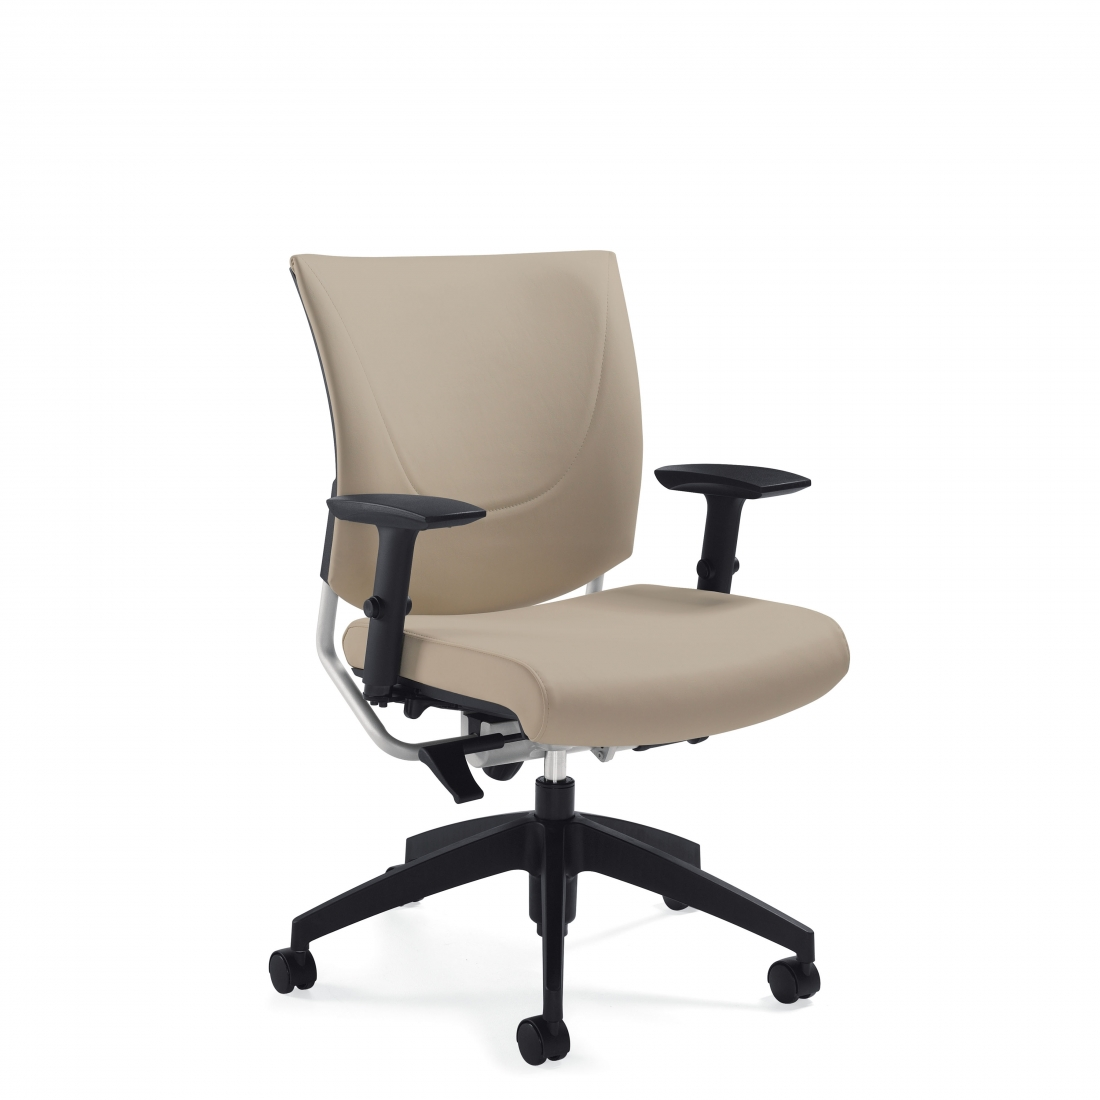 folding chair rental vancouver steelcase amia graphic posture buy rite business furnishings